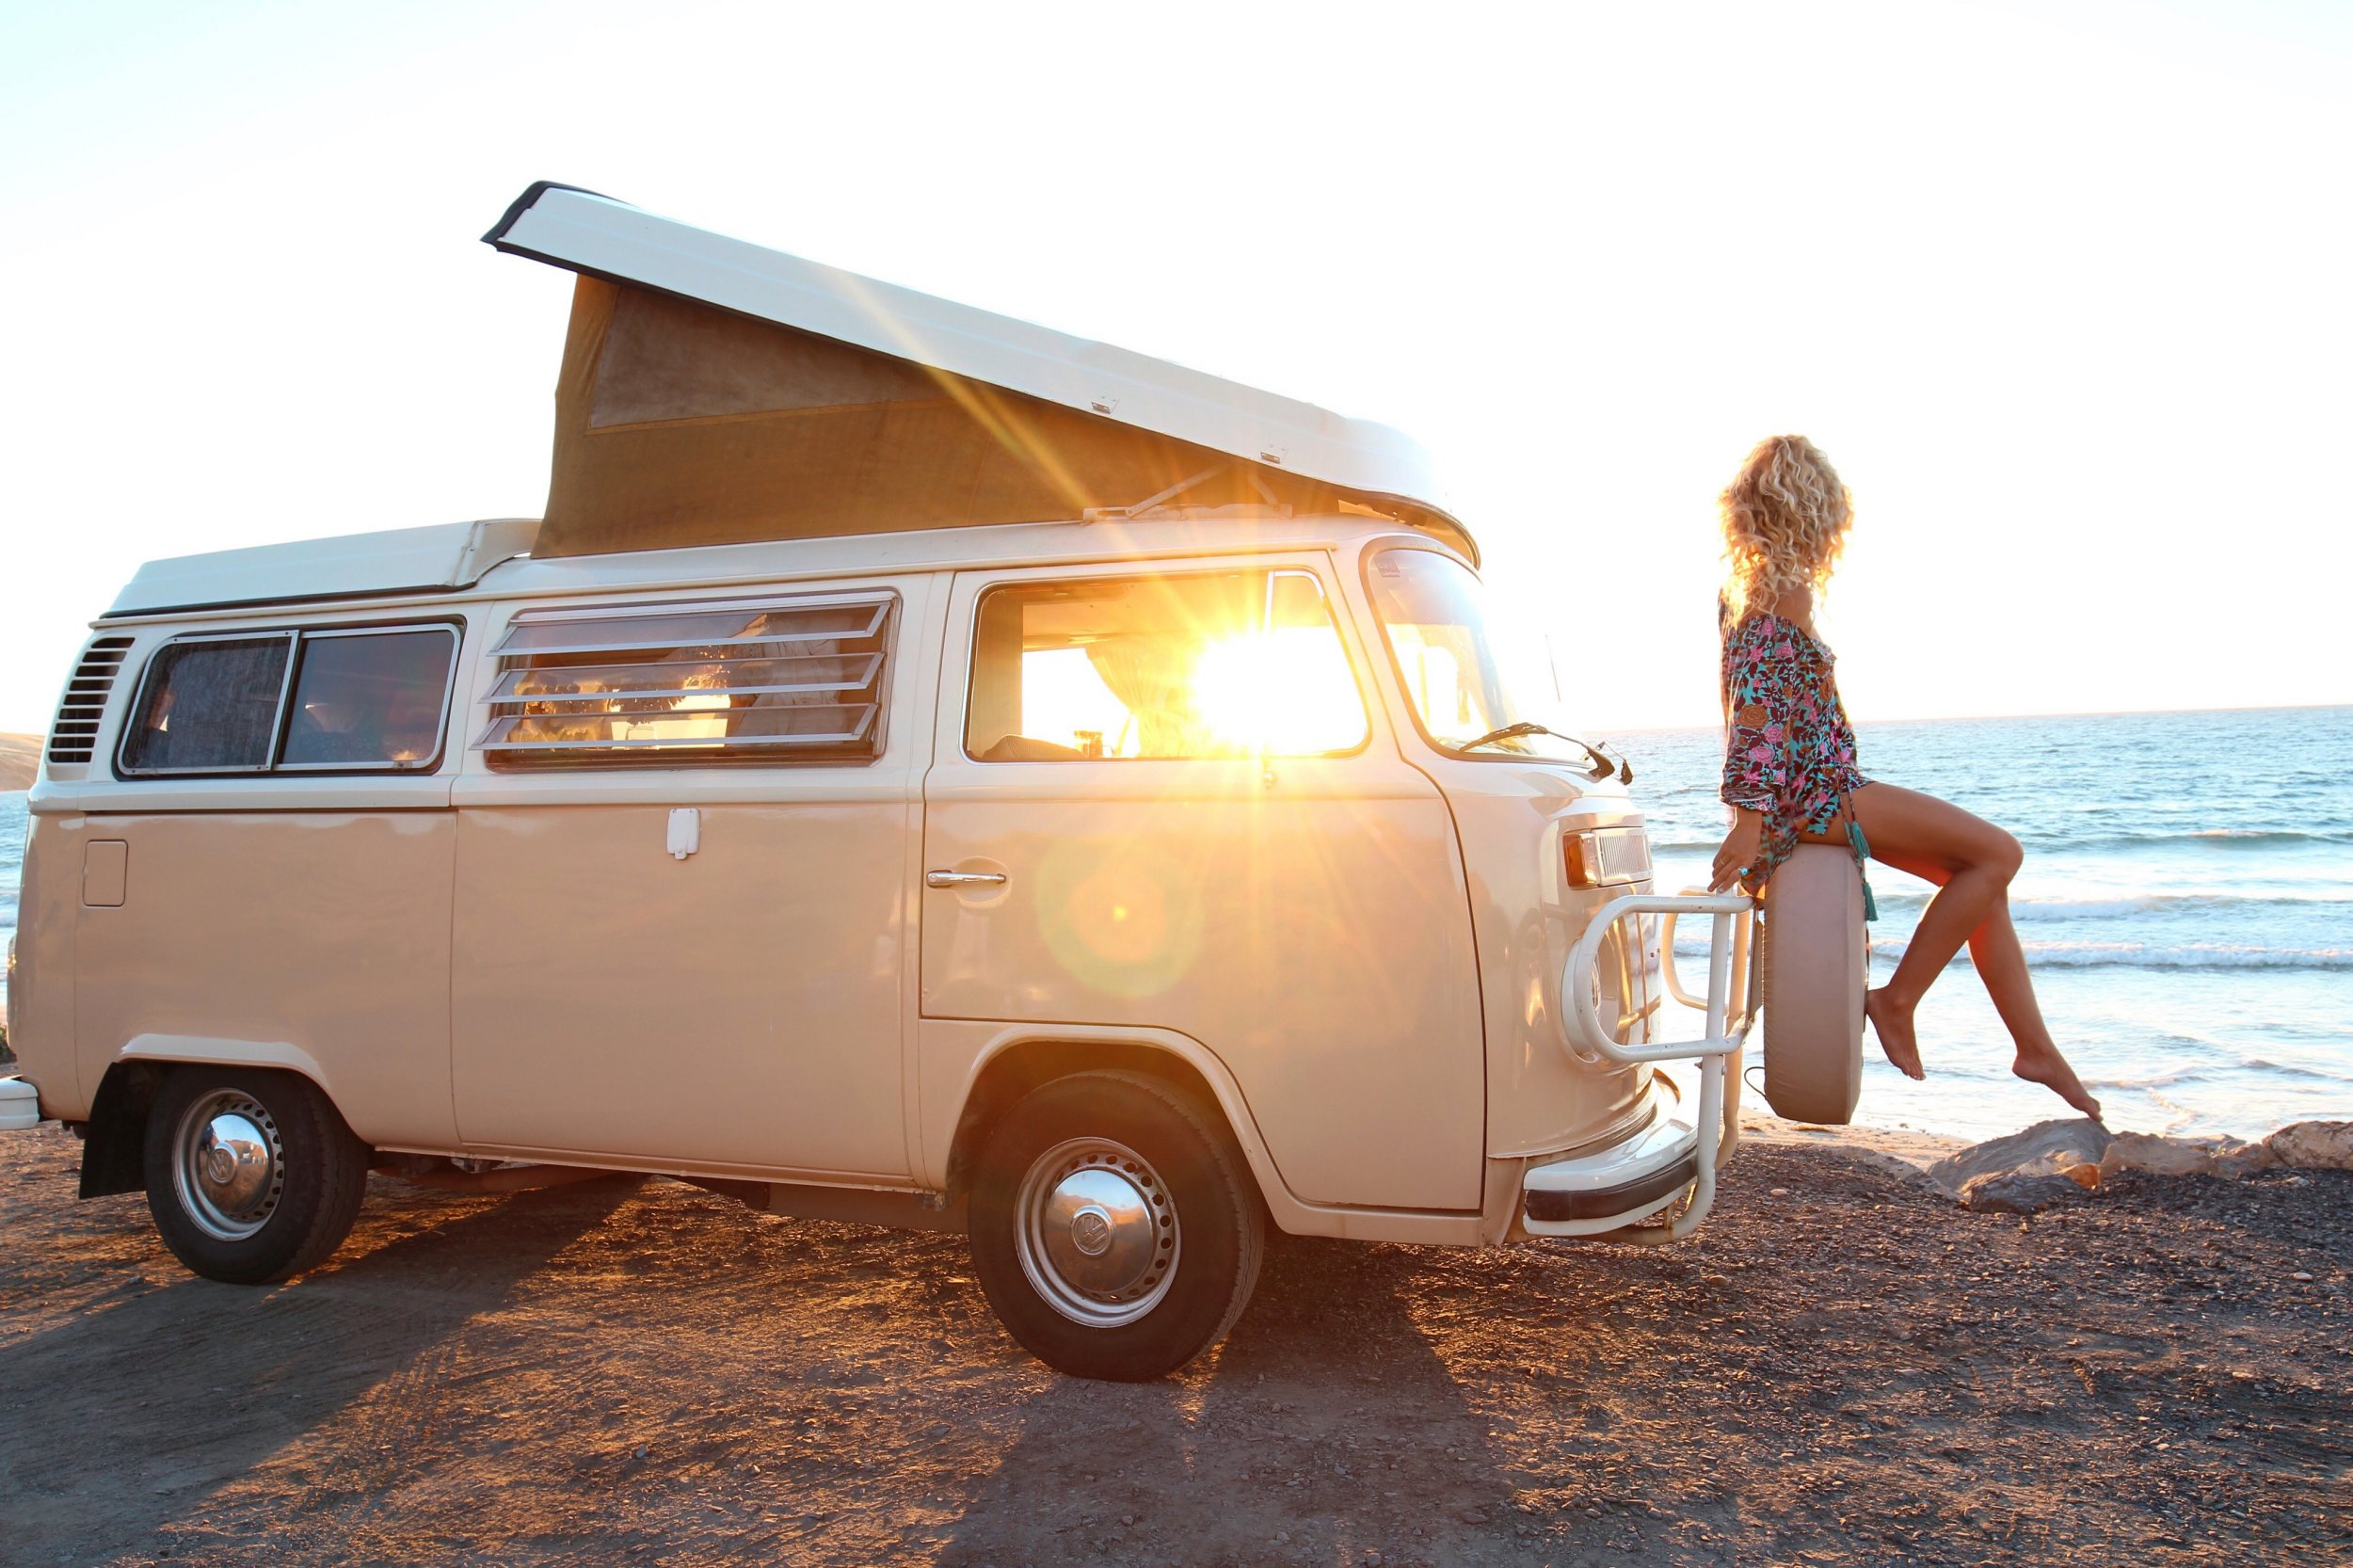 Widower gives his $40k Kombi away for HALF price to young couple who now travel the country living their dream 'van life' Picture: Elise Cook